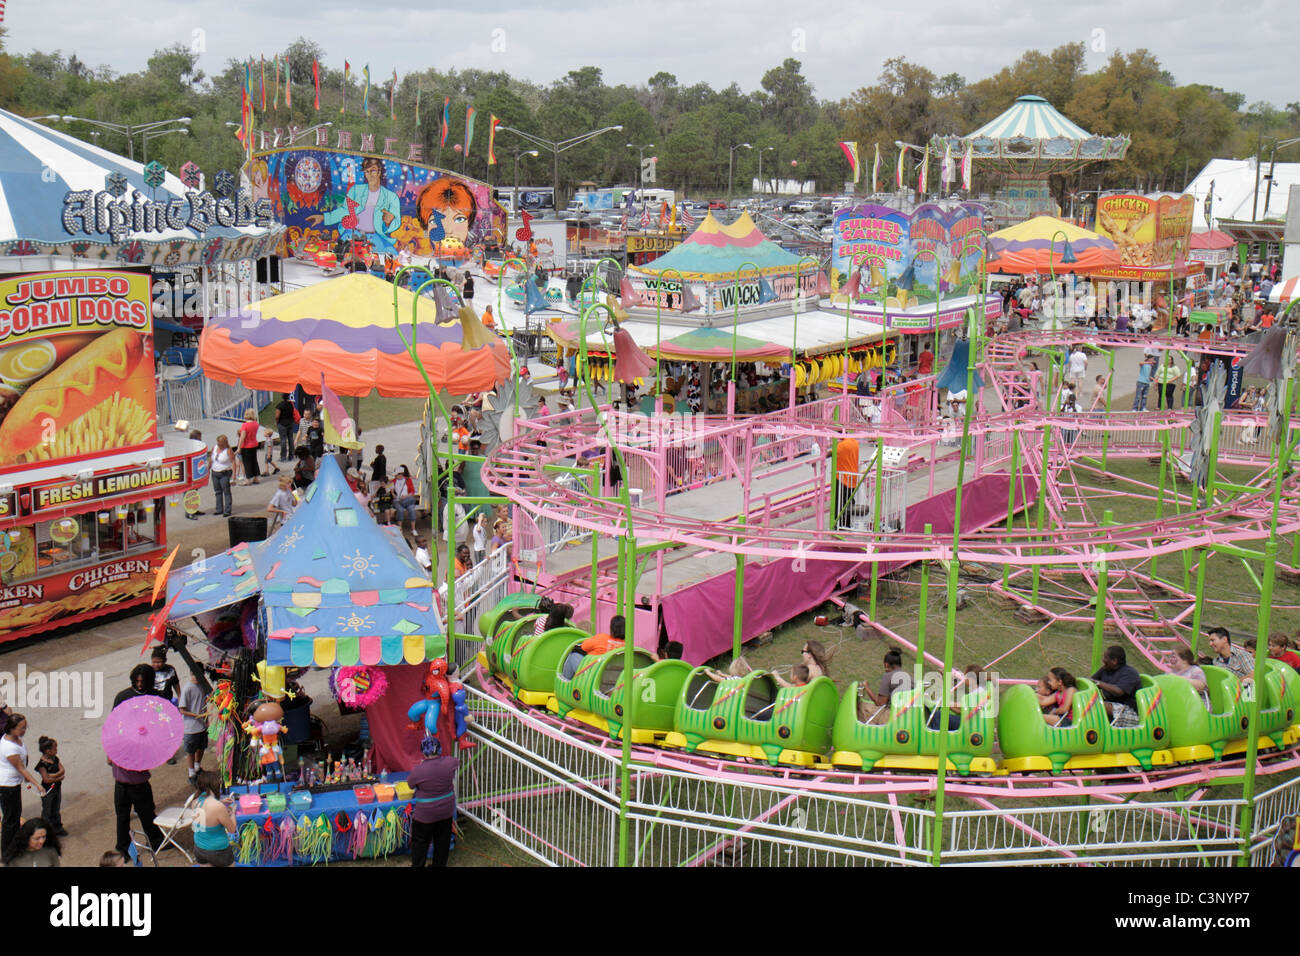 Carnival Rides Stock Photos & Carnival Rides Stock Images - Alamy